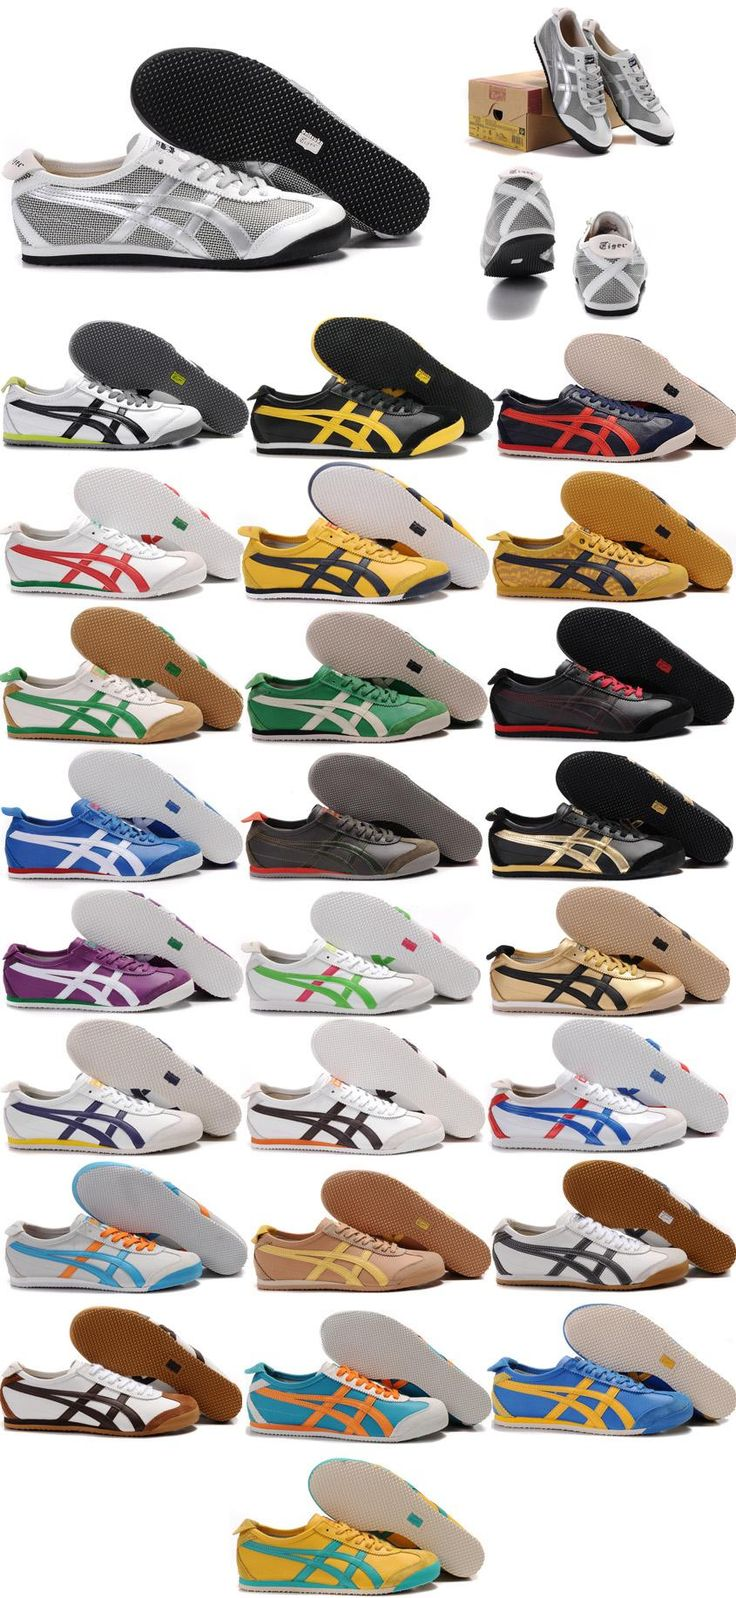 Onitsuka Tiger Mexico 66 1:1 2011 By Asics Casual Shoes (Many Colors)